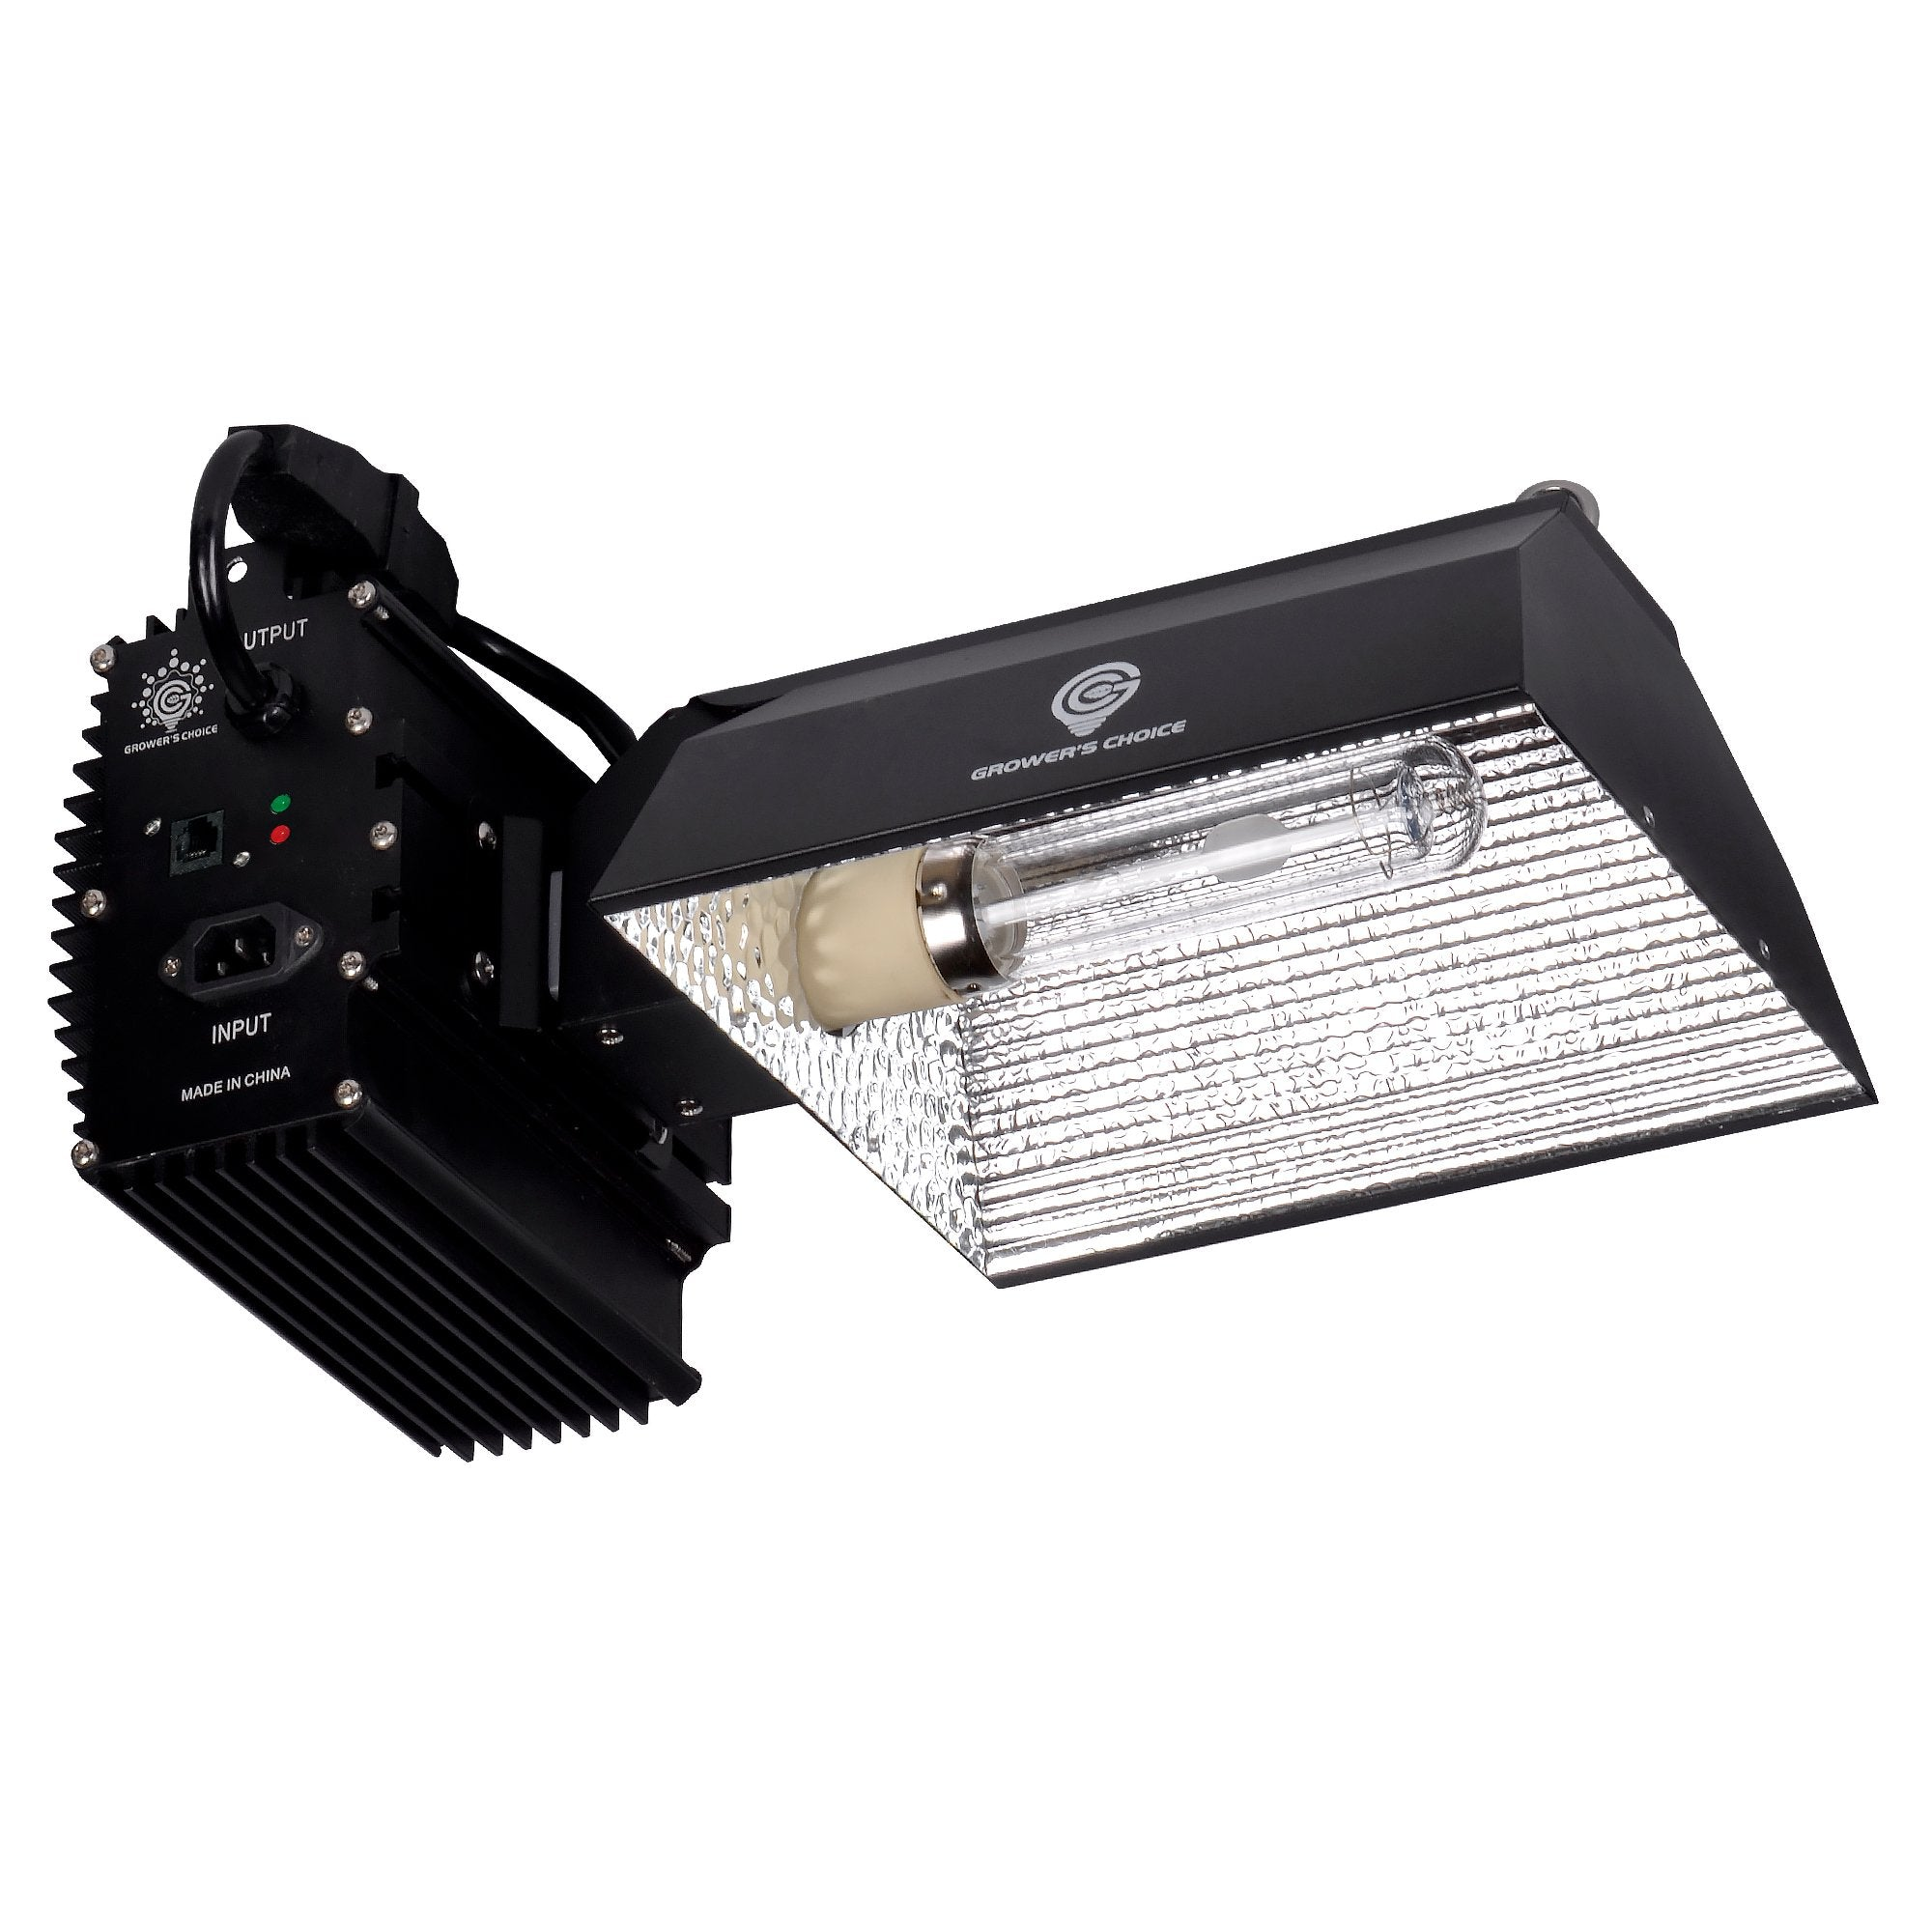 Grower's Choice 315W CMH Horticultural Grow Light Fixture - Hydroponics Greenhouse